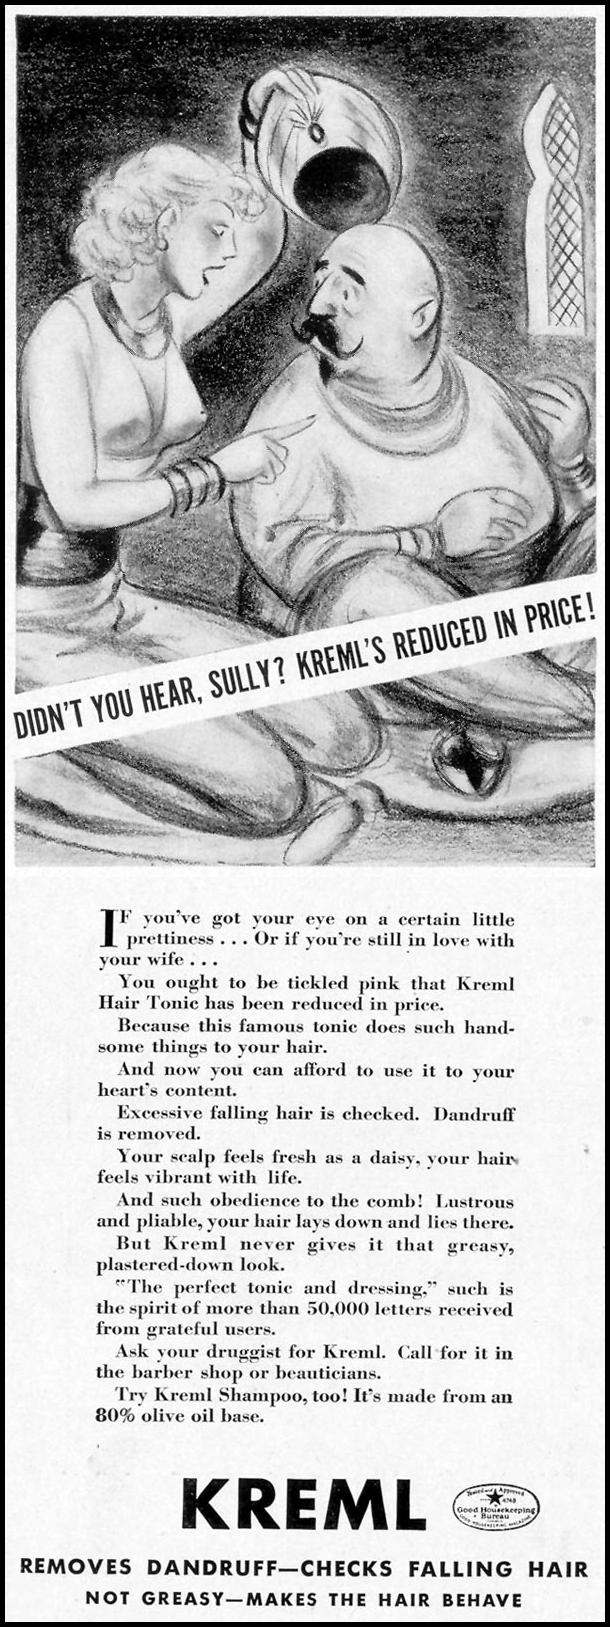 KREML HAIR TONIC LIFE 08/09/1937 p. 16